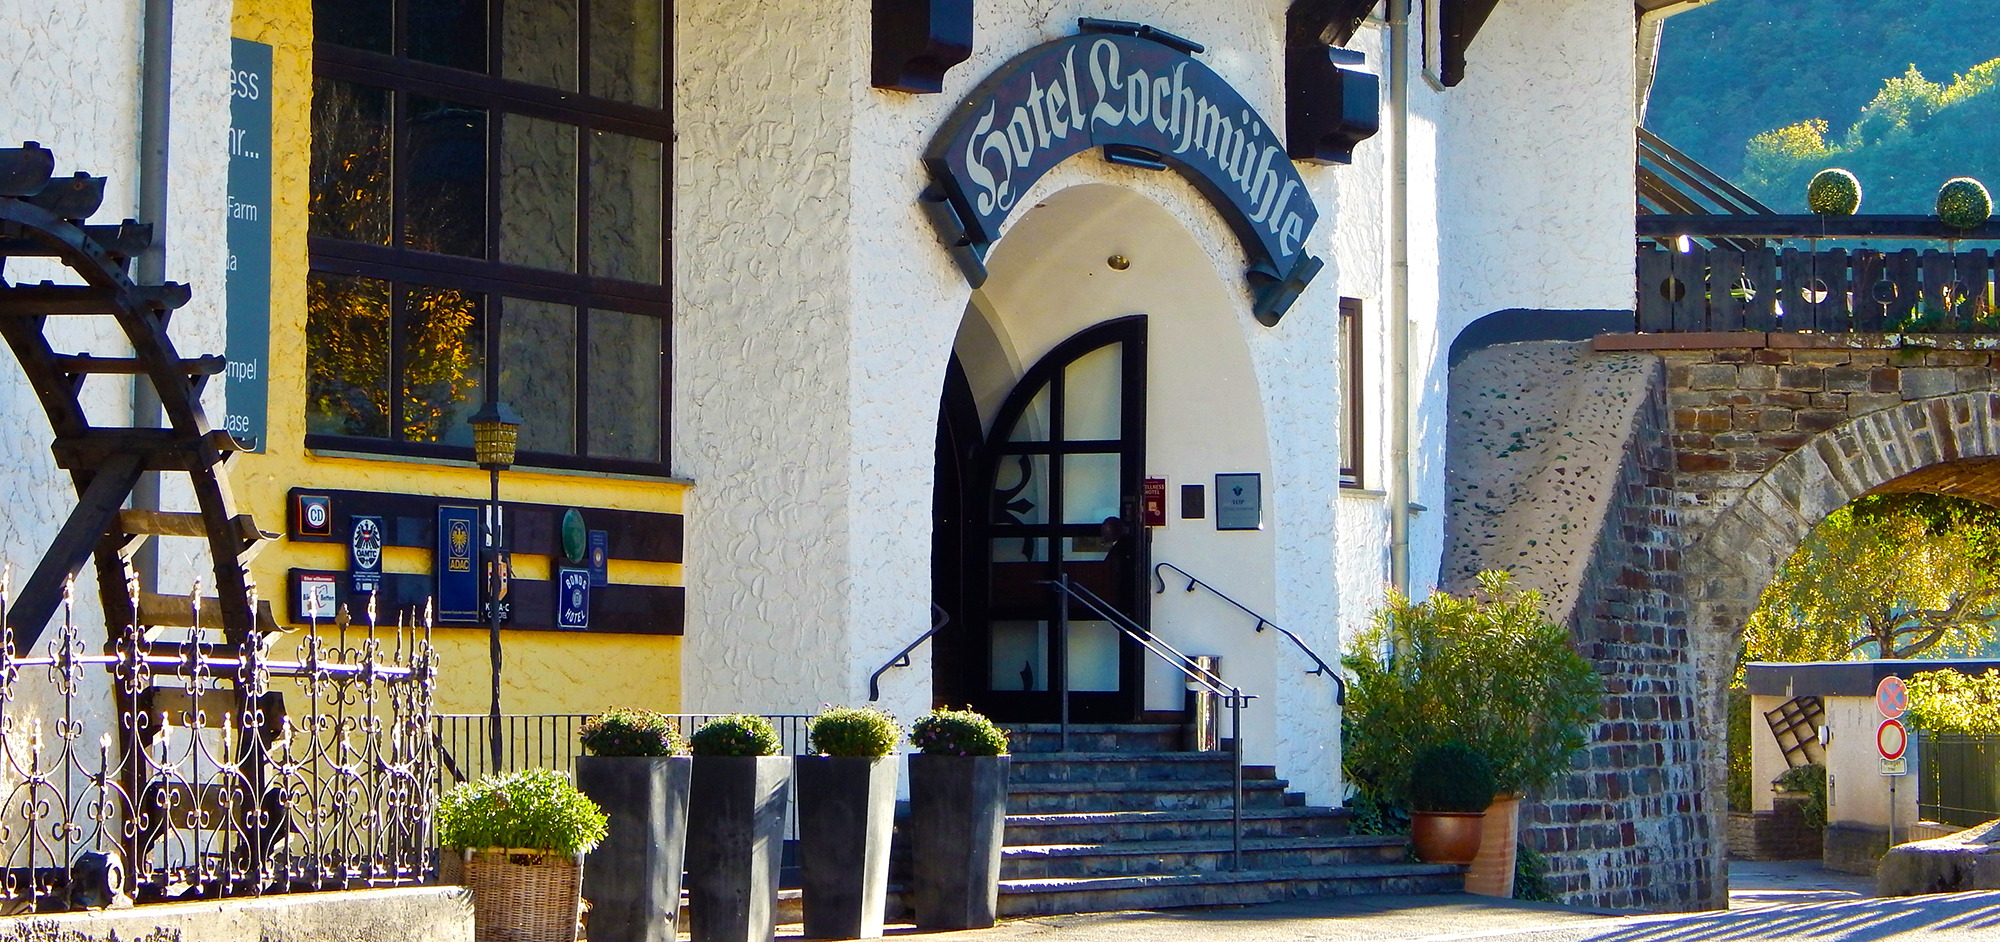 Hotel Lochmuehle Mayschoss Germany